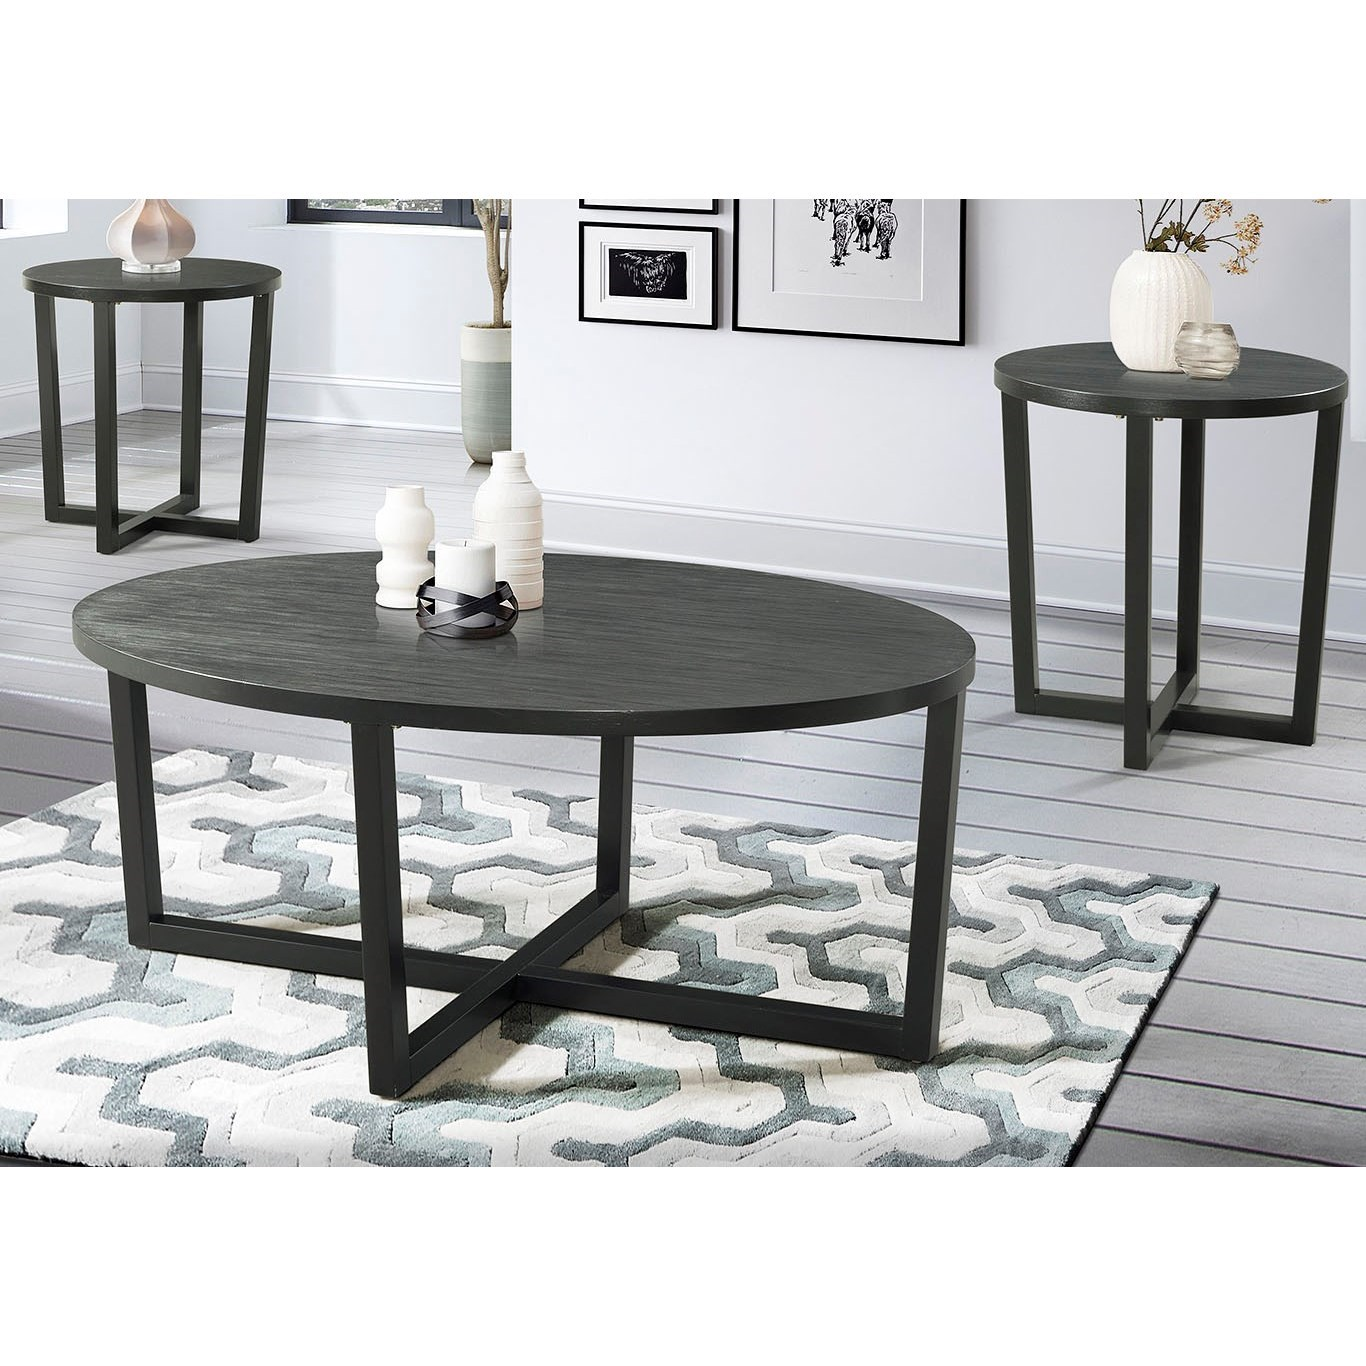 7585 3-Piece Occasional Table Set by Lane at Furniture Fair - North Carolina